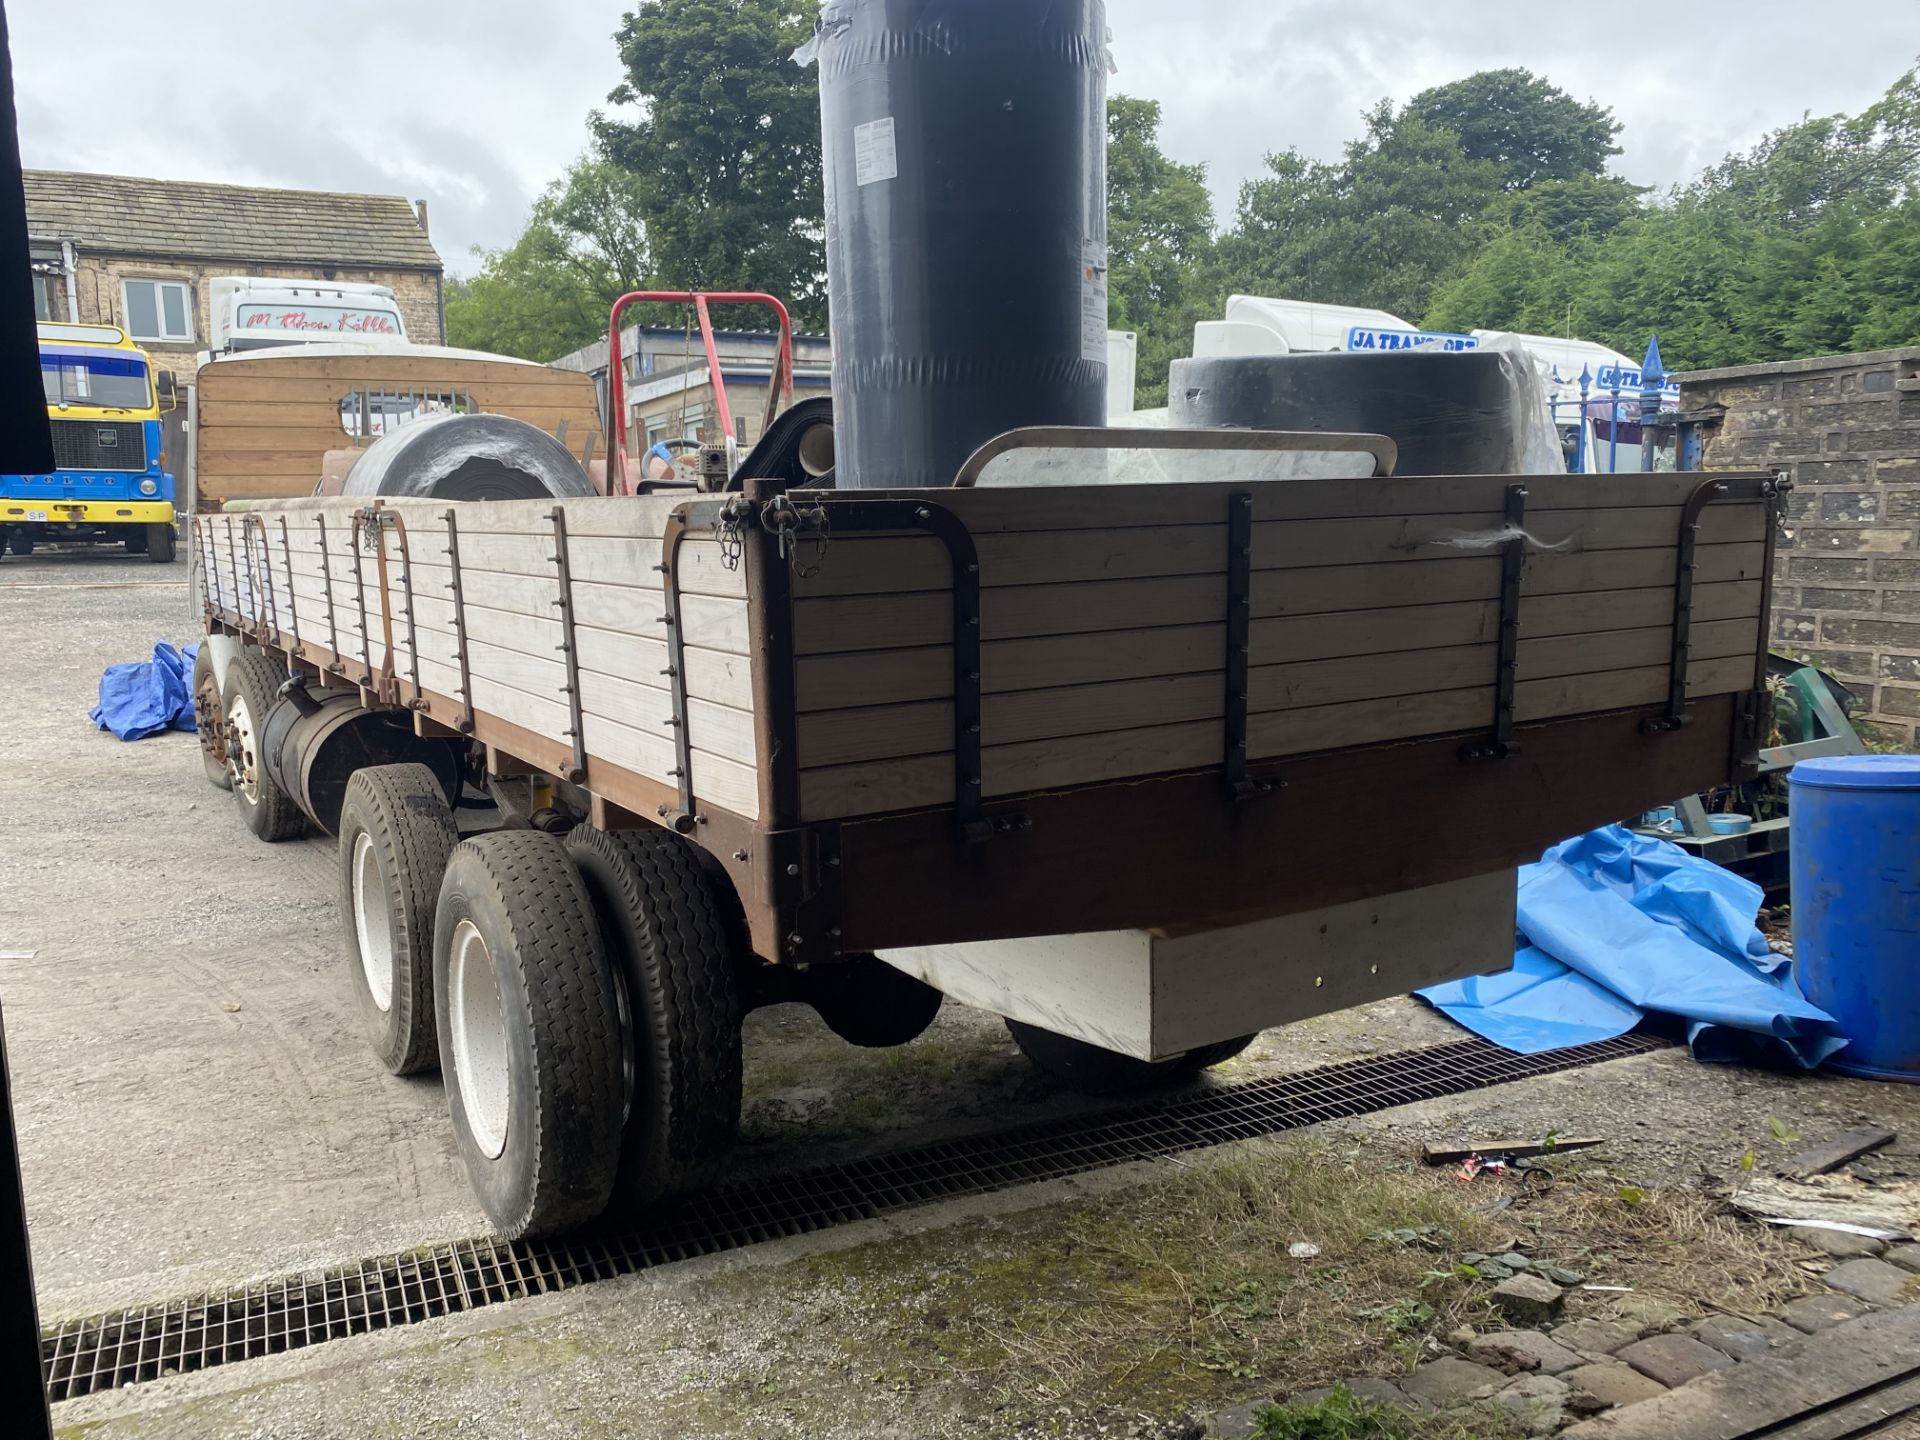 AEC Mammoth Major 8x4 Rigid Timber Dropside Truck, partially restored, with quantity of spare - Image 4 of 21